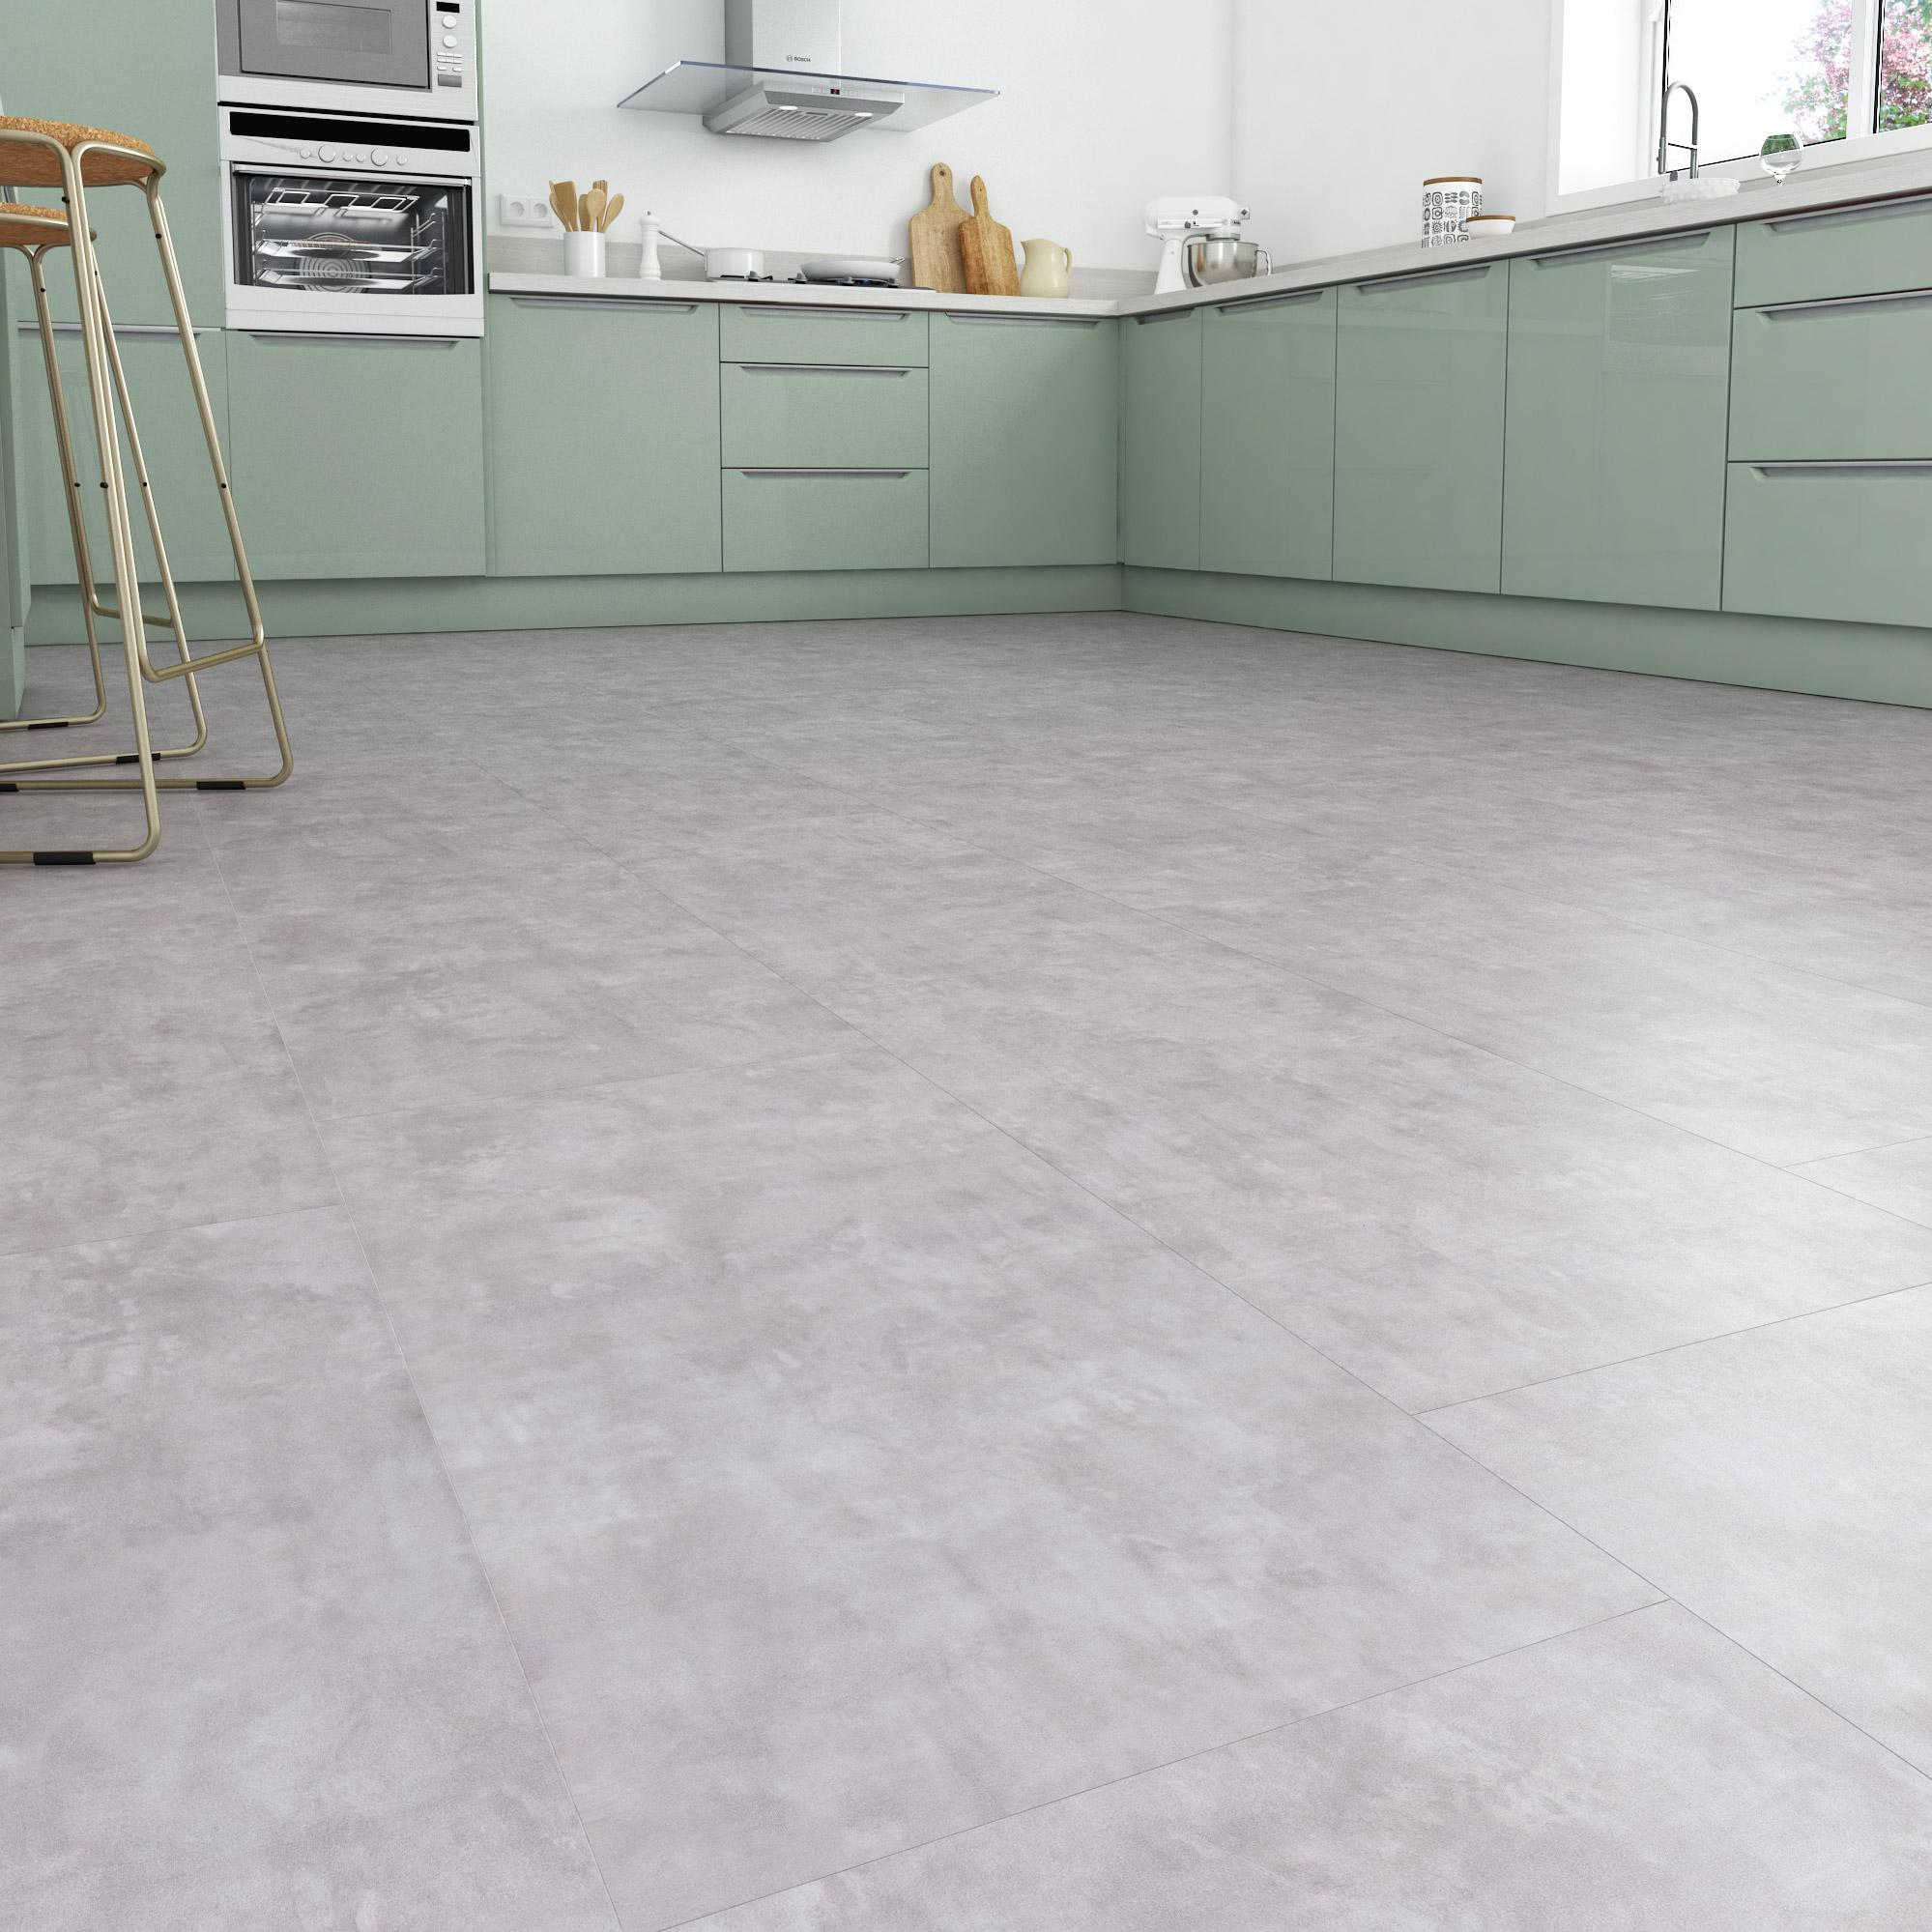 Dalle PVC clipsable manhattan clear GERFLOR Senso premium clic